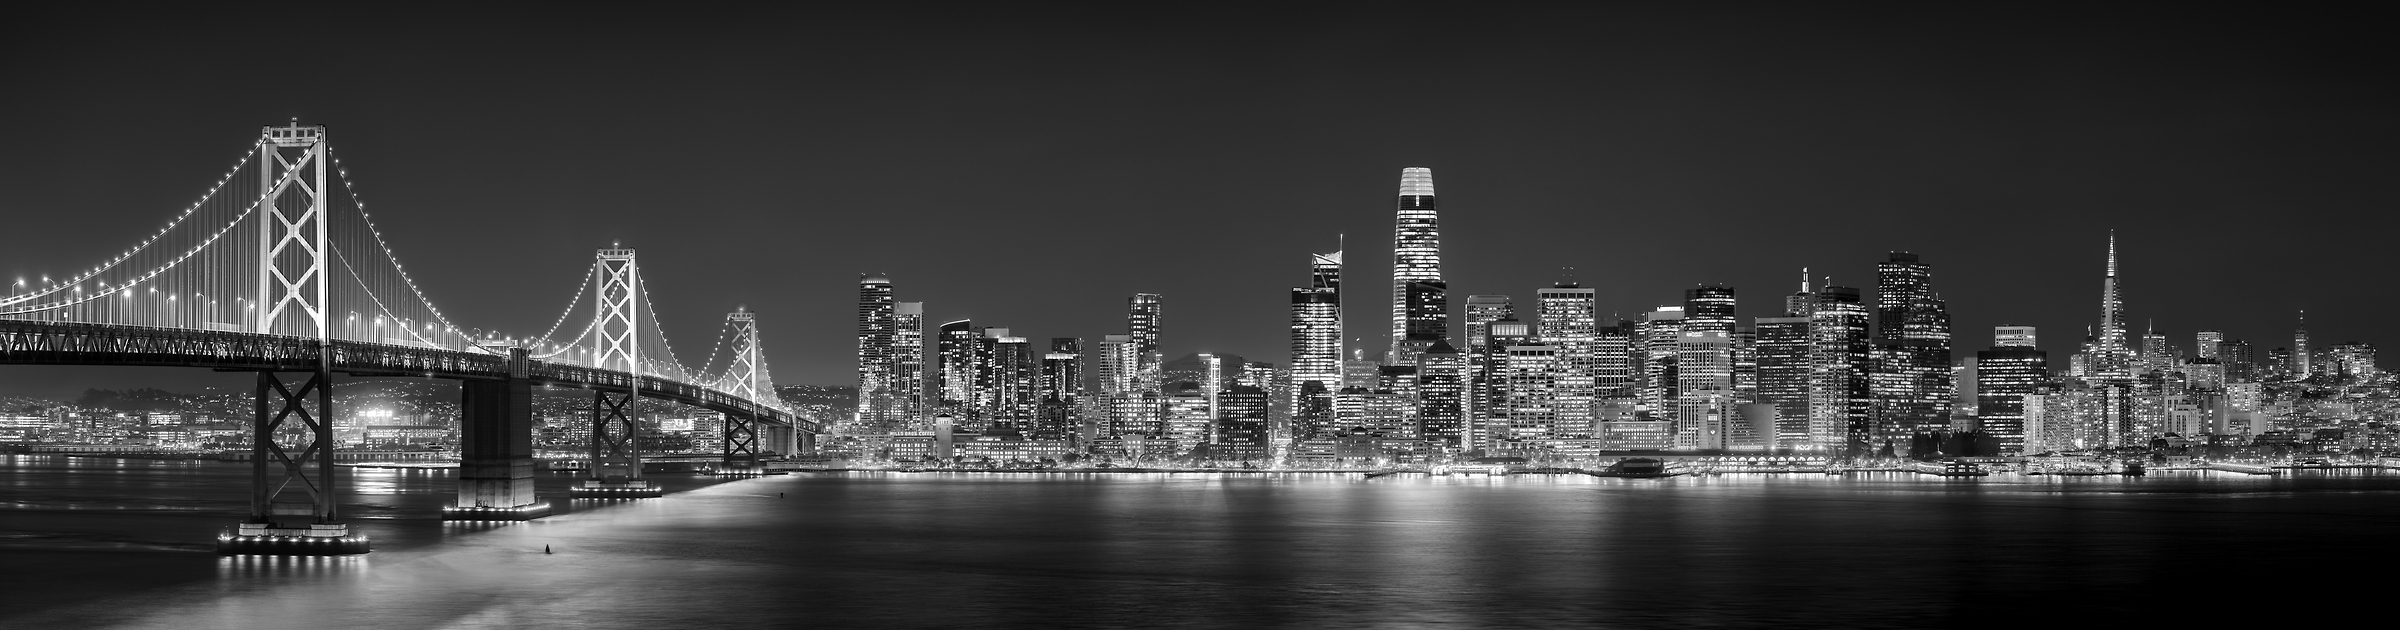 686 megapixels! A very high resolution, large-format VAST photo print of the San Francisco skyline and the Bay Bridge at night; fine art cityscape skyline photograph created by Jim Tarpo in Yerba Buena Island and Treasure Island, San Francisco, California